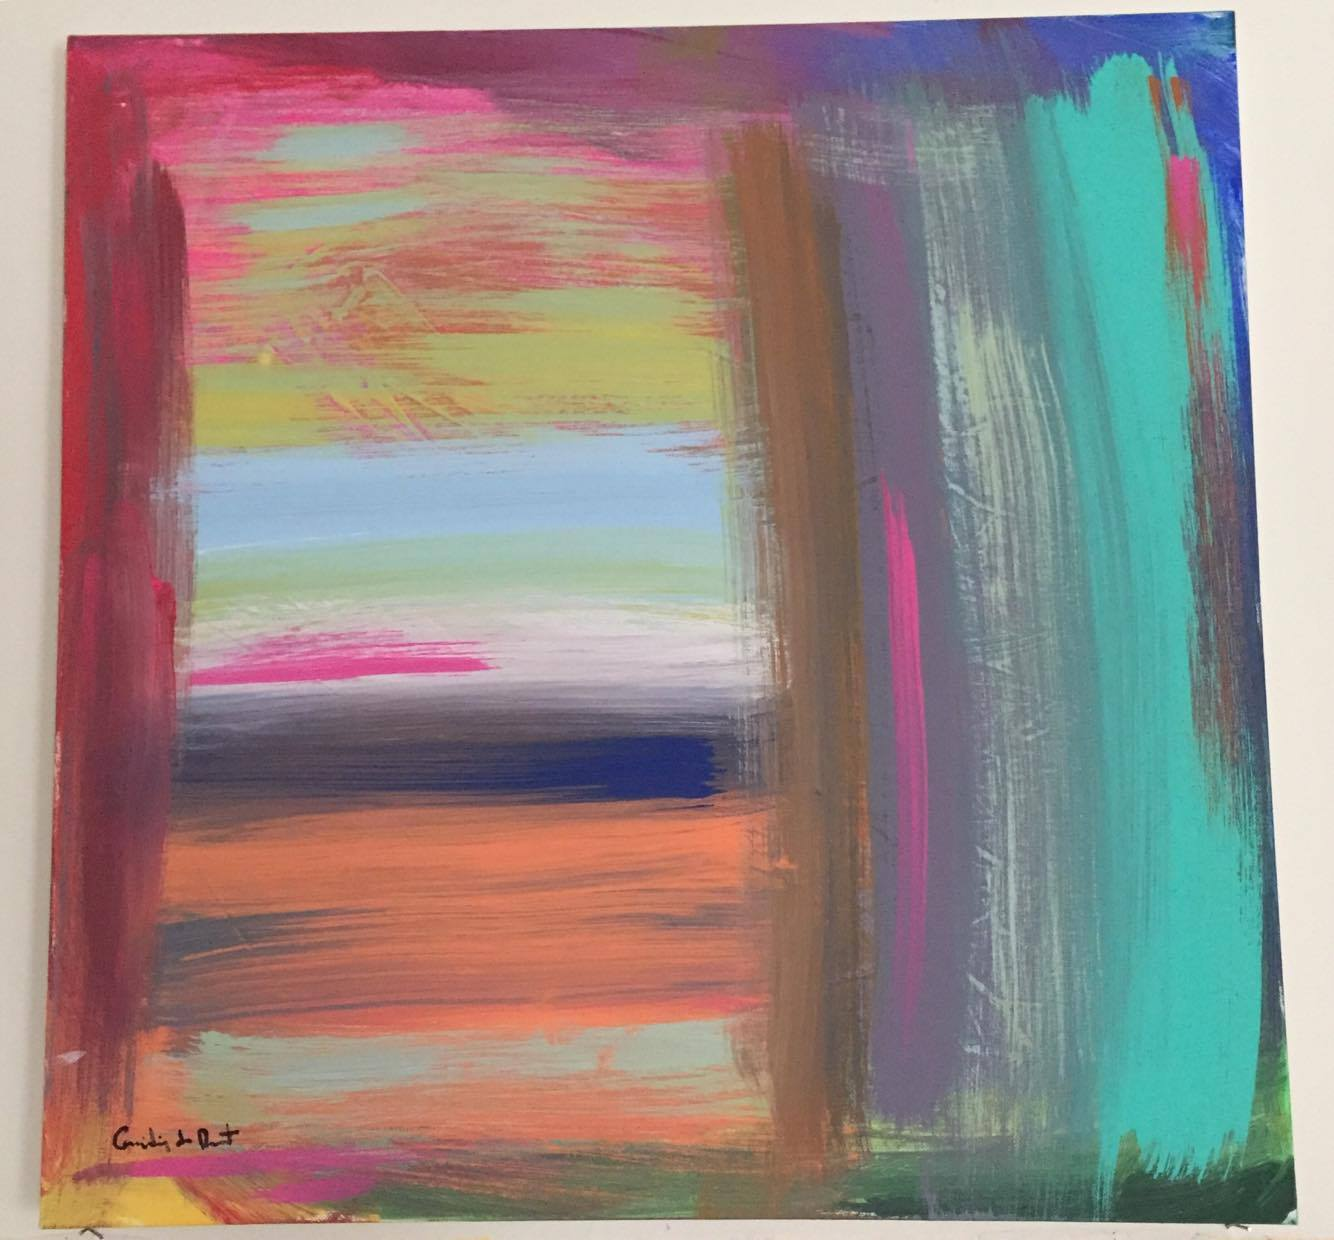 Untitled 1 artwork by Camilia de Murat - art listed for sale on Artplode